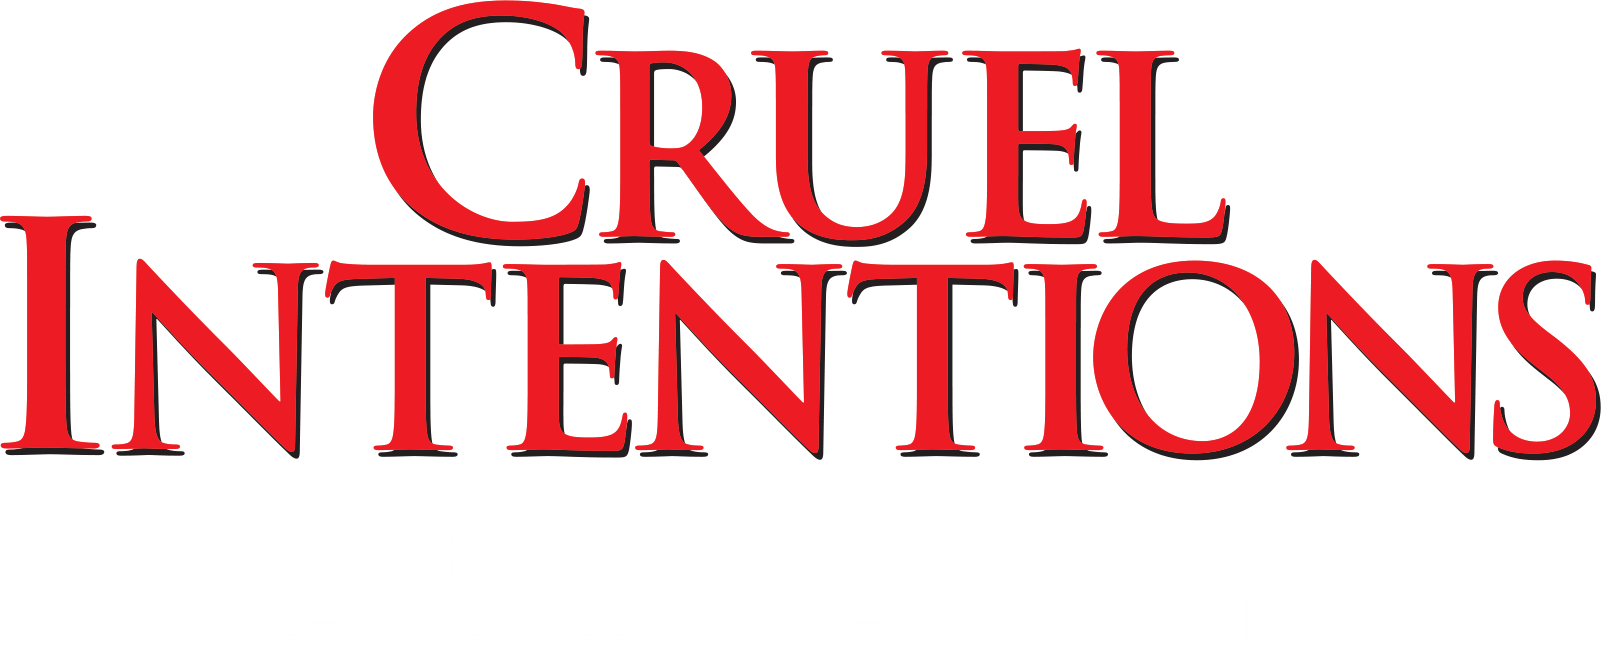 Cruel Intentions: Synopsis | Sony Pictures